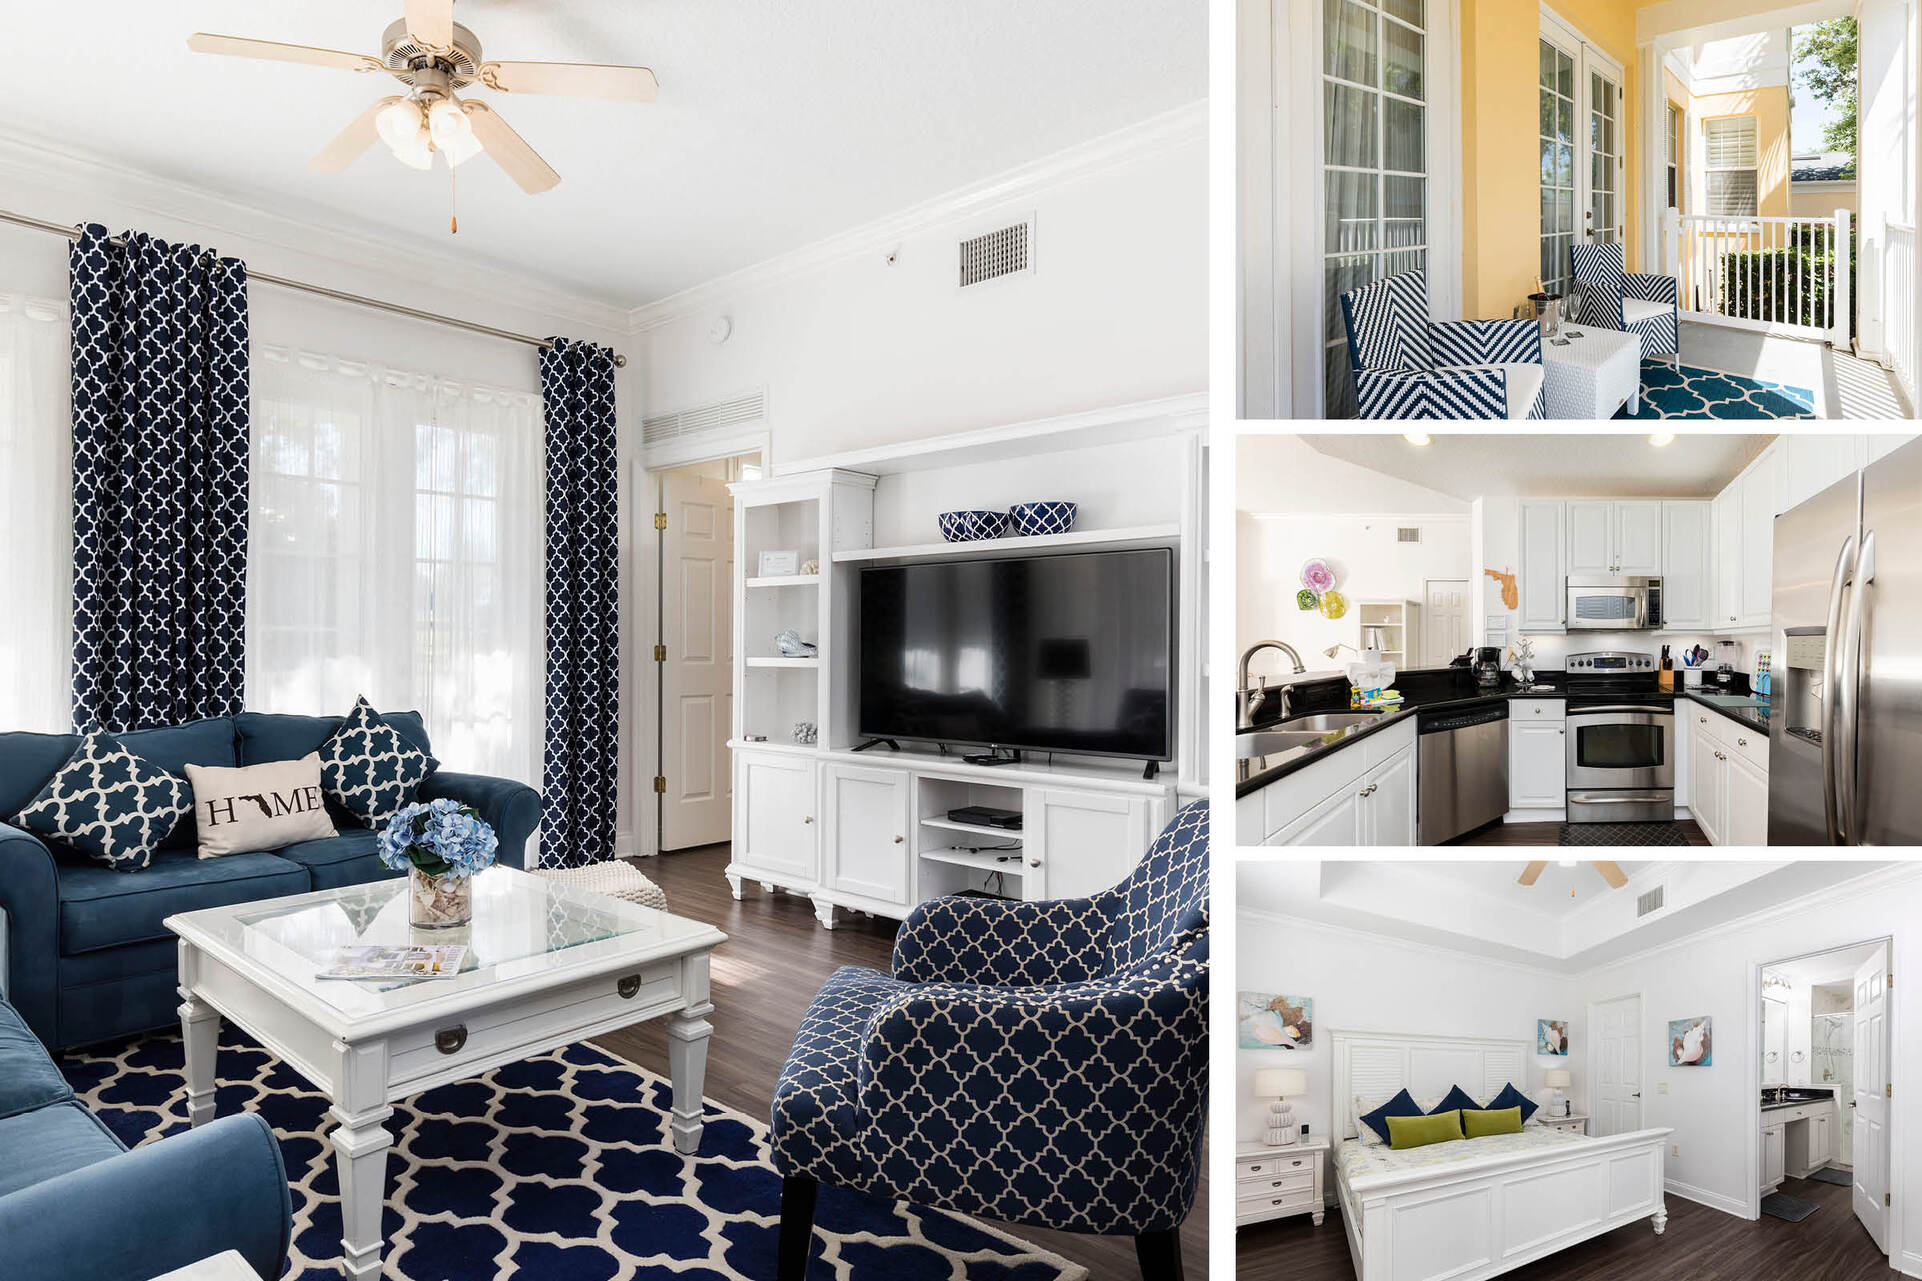 Welcome to the Luxury Terrace Hideaway, a gorgeous ground floor condo in a great location